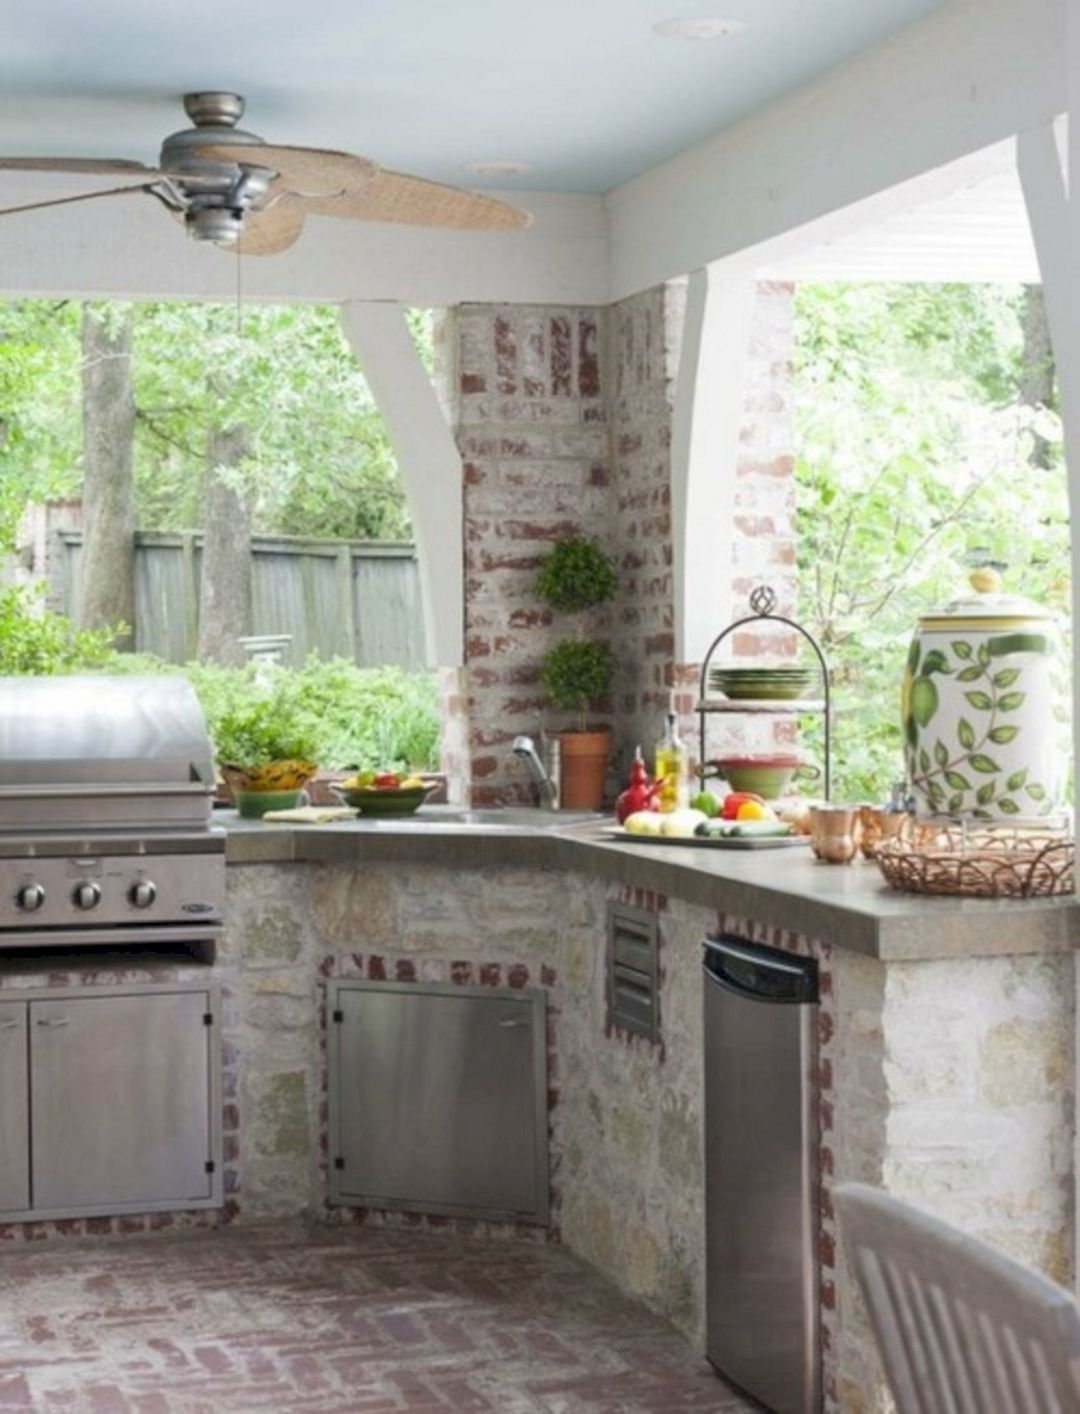 89 Incredible Outdoor Kitchen Design Ideas That Most Inspired 018 ...